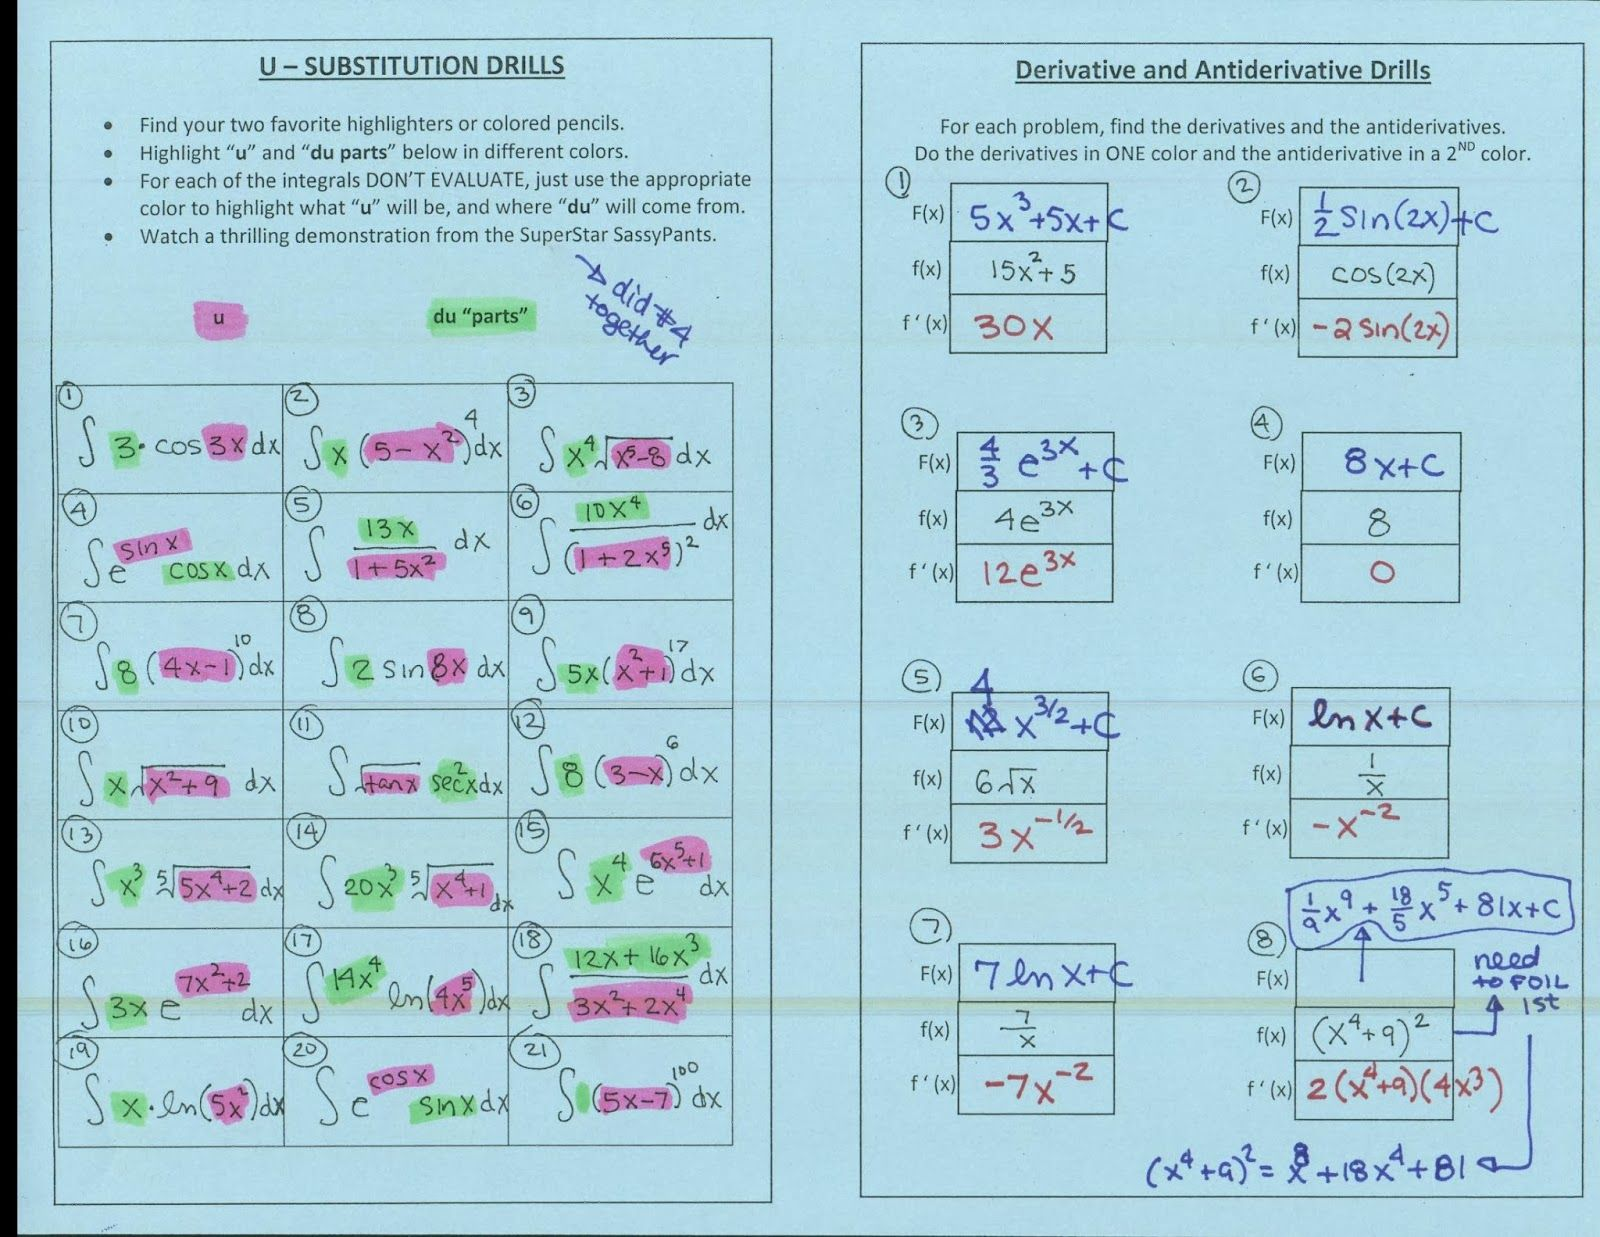 U-Substitution Drills (highlight the \